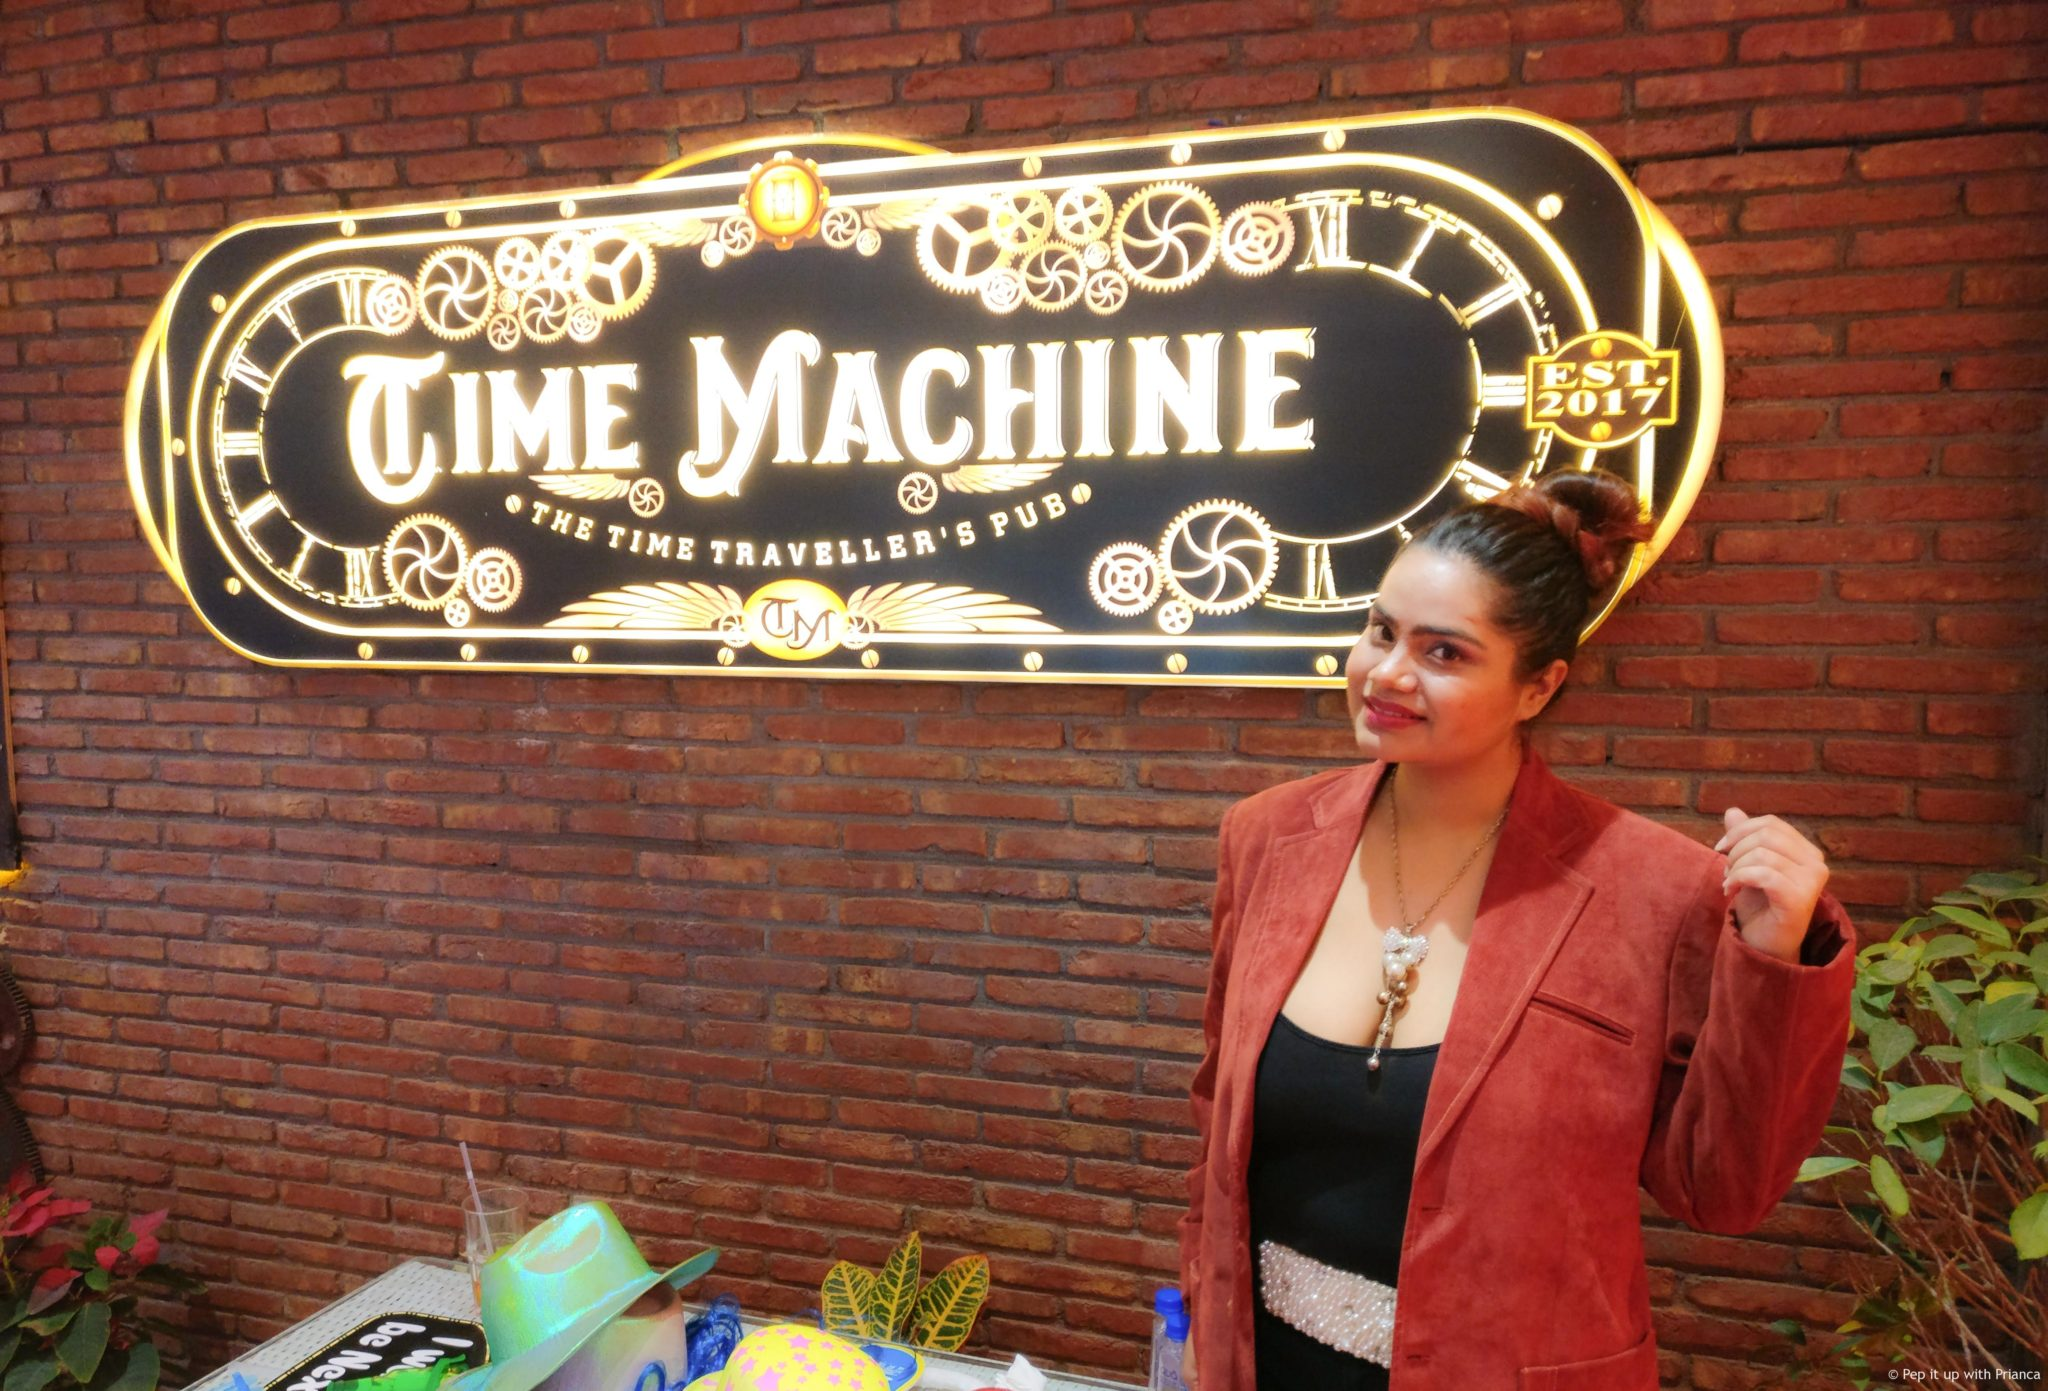 Time machine launch party